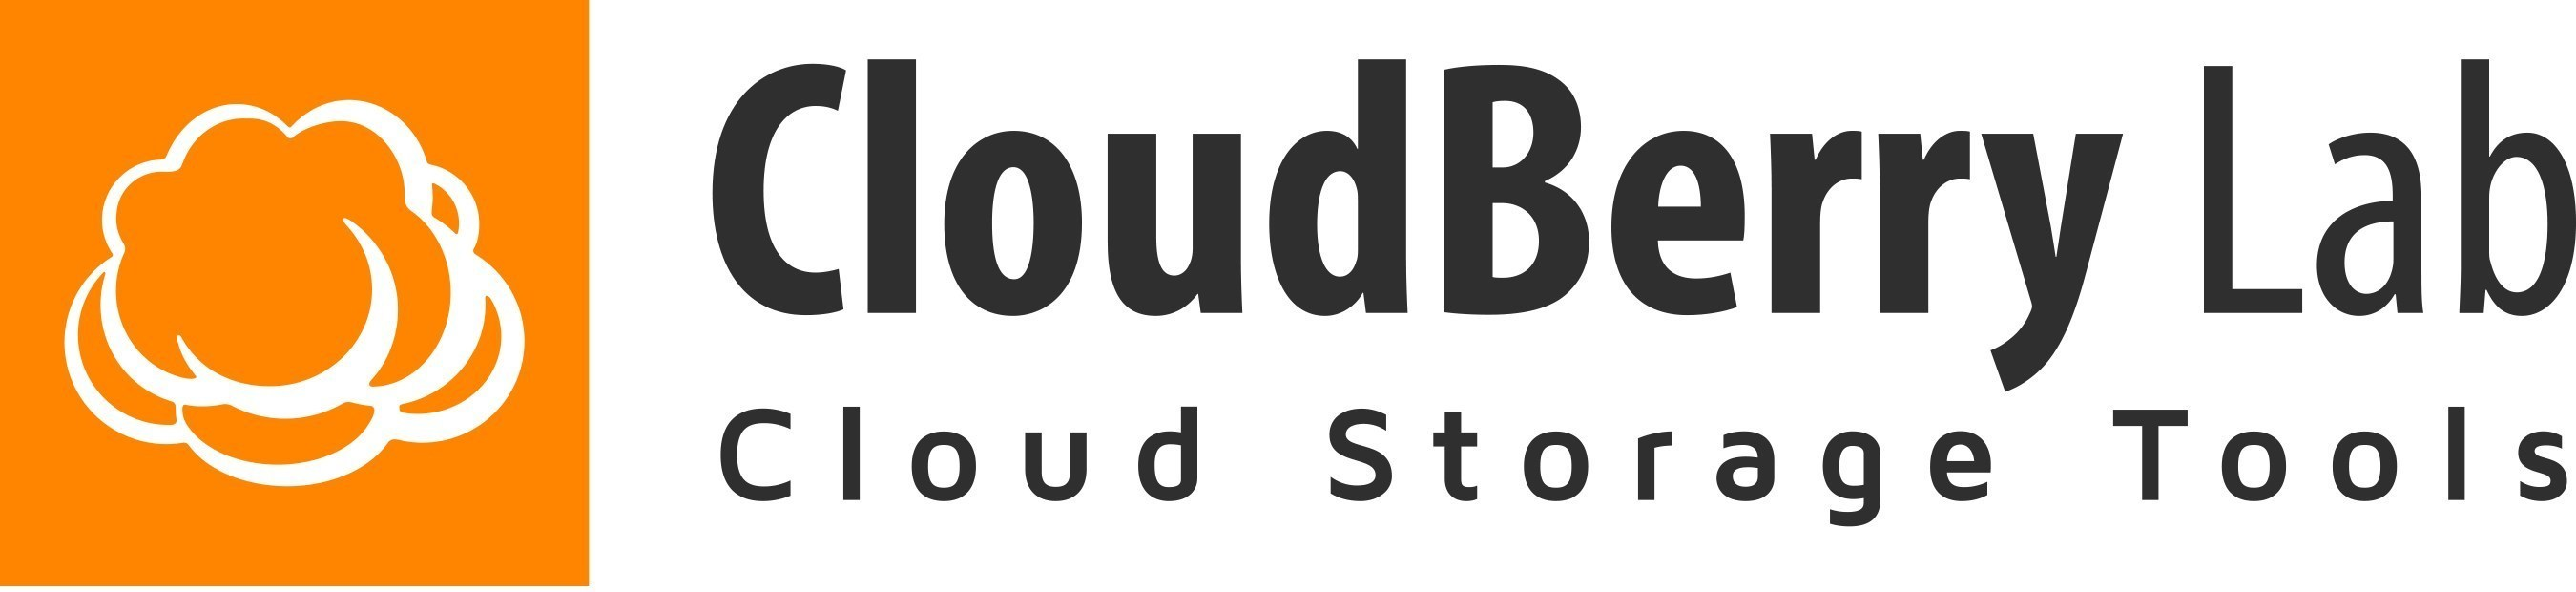 CloudBerry Lab(TM) provides cloud-based backup and file management services to small and mid-sized businesses ...